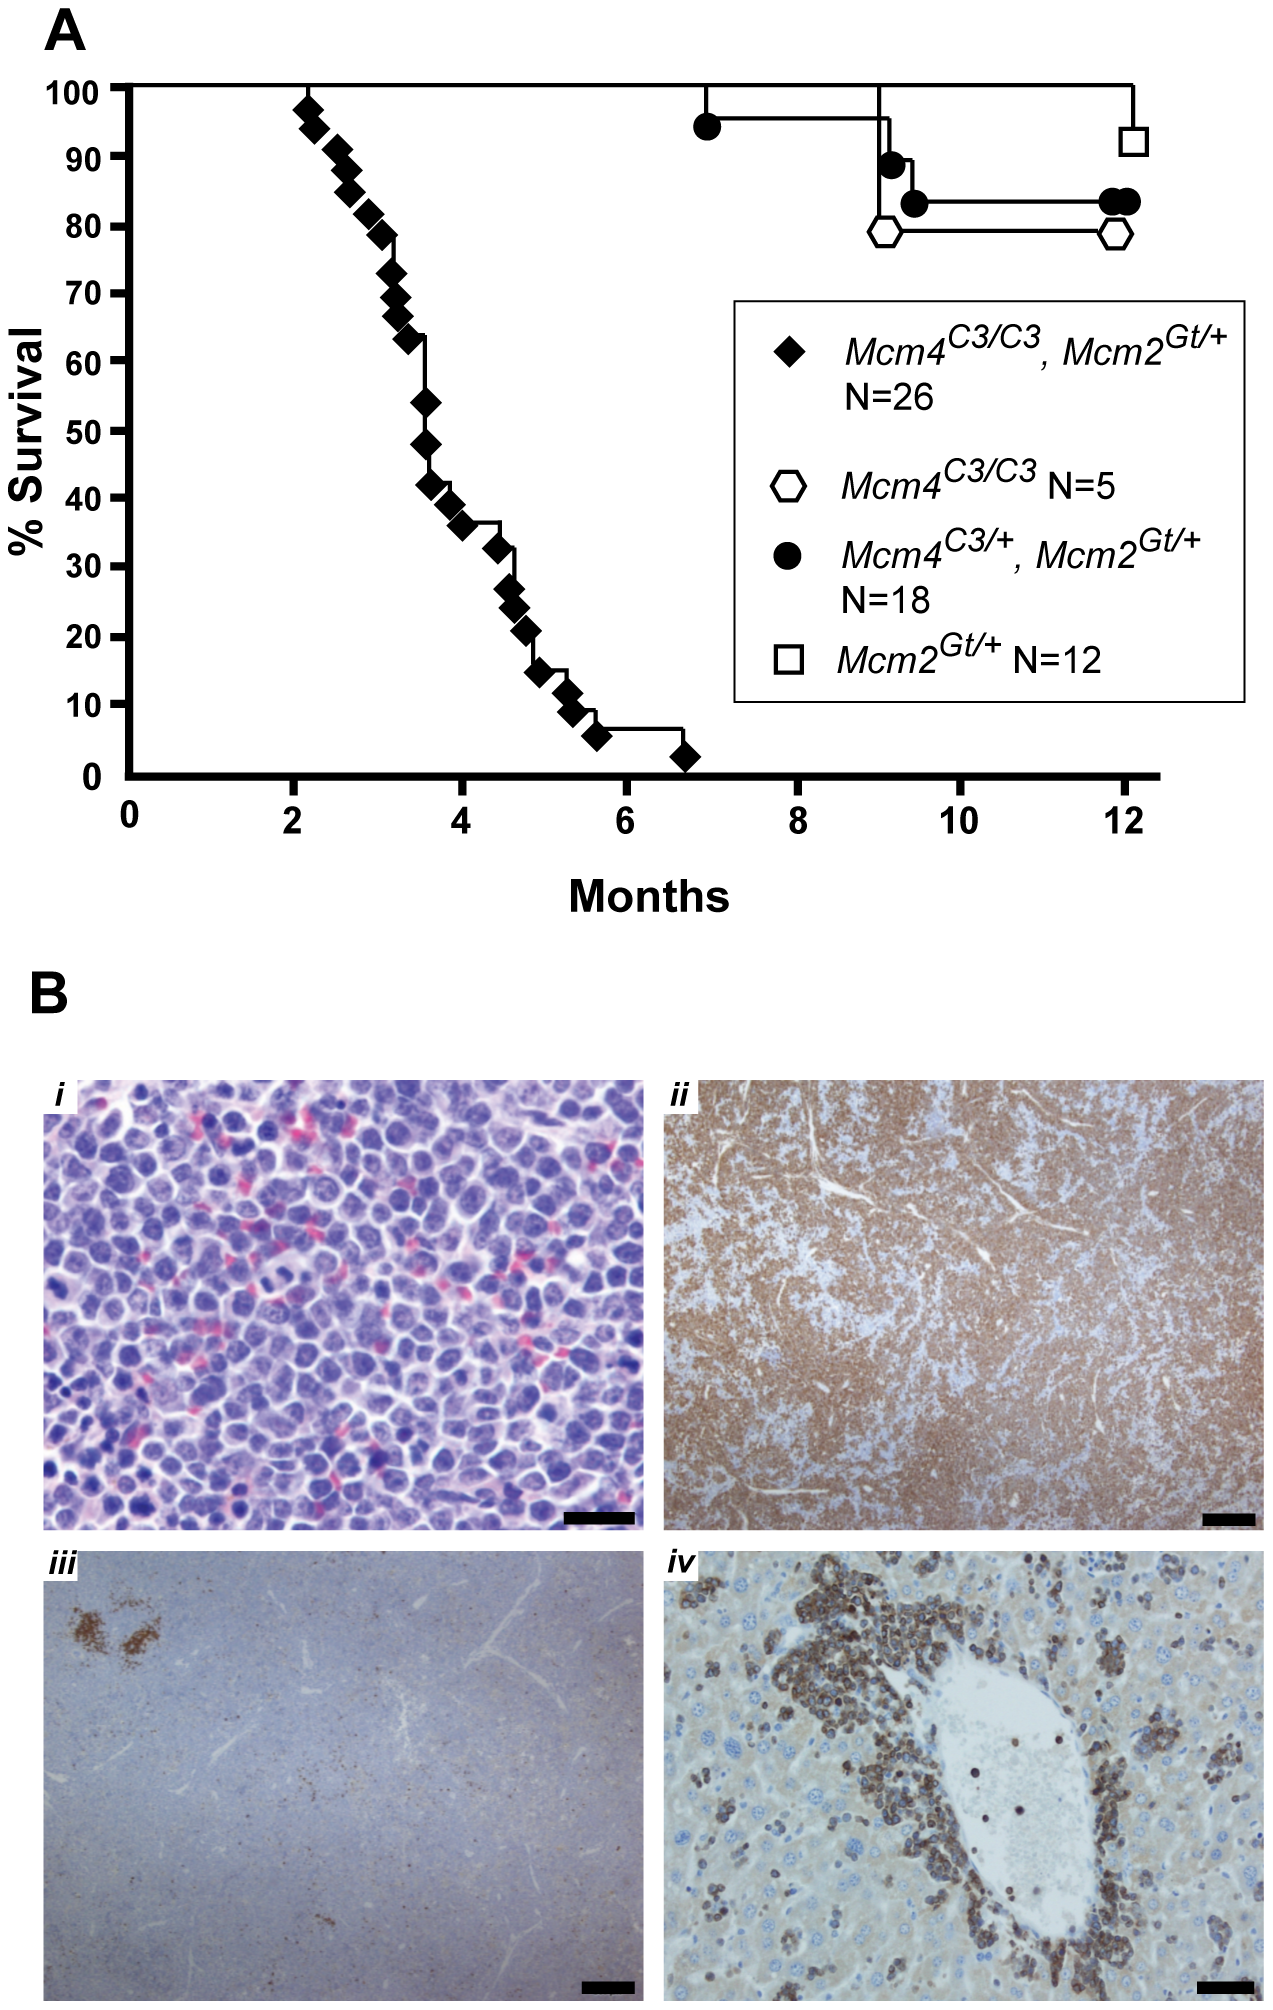 Premature morbidity and cancer susceptibility in <i>Mcm4<sup>Chaos3/Chaos3</sup> Mcm2<sup>Gt/+</sup></i> mice.